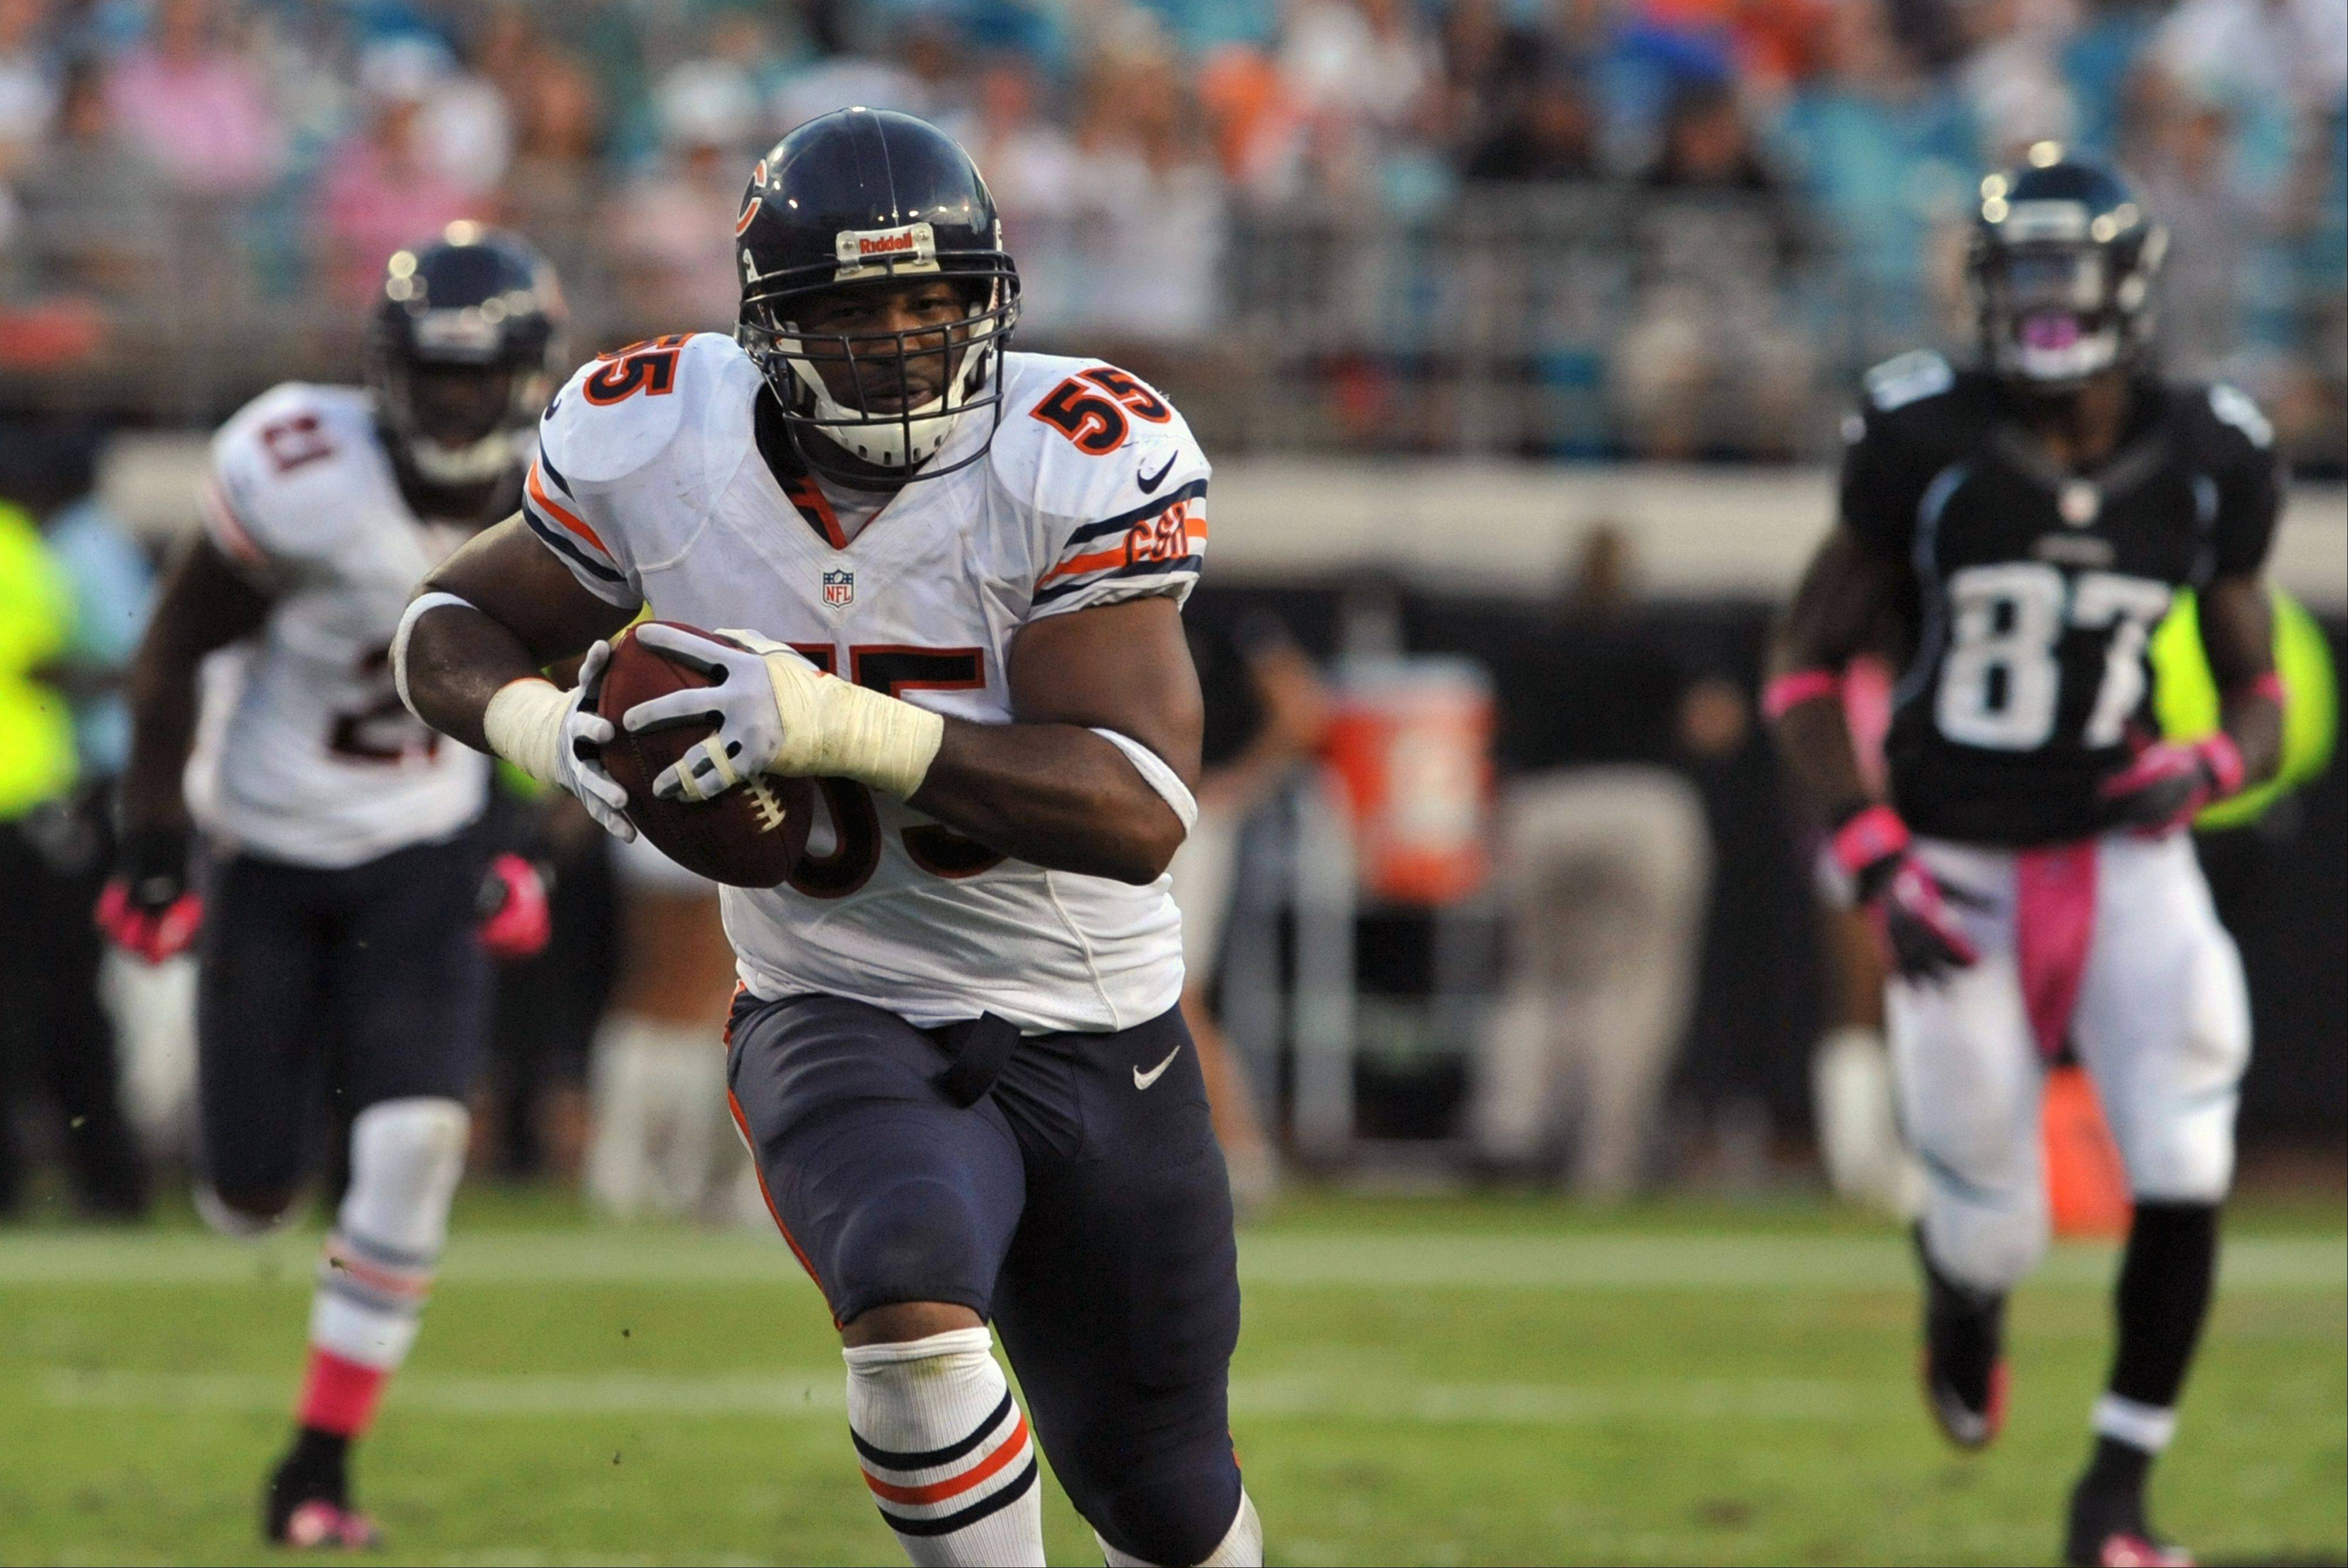 Bears linebacker Lance Briggs runs back an interception for a touchdown during Sunday's victory at Jacksonville. The Bears have scored 5 touchdowns on interception returns during their three-game winning streak.